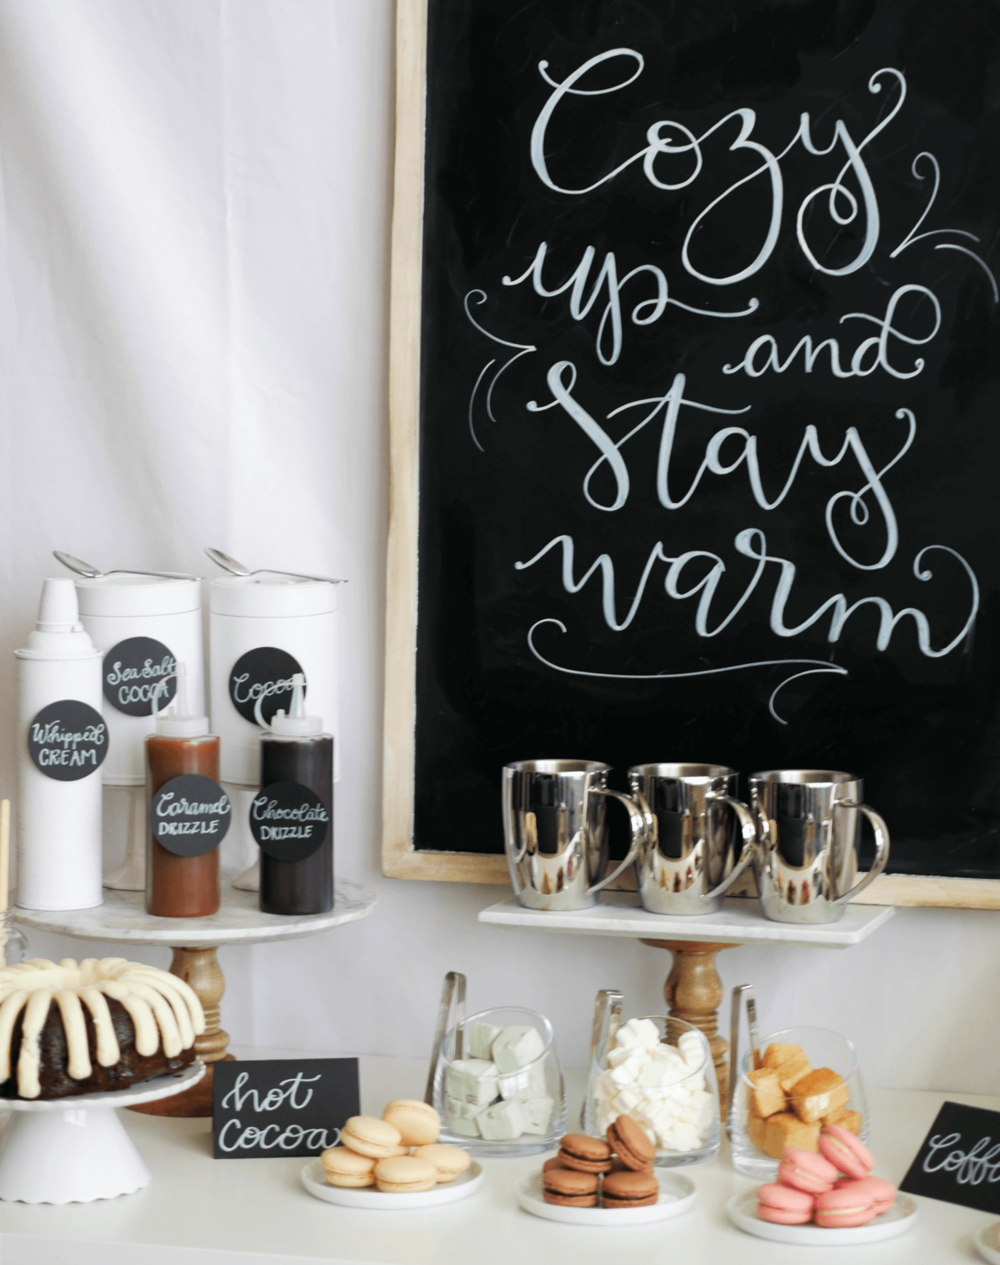 Cozy up and stay warm with this beautiful DIY Chalkboard Sign. It's the perfect backdrop for this Hot Cocoa and Coffee Station. Styled by party stylist Mint Event Design. #partyideas #partyinspiration #hotchocolate #hotcocoa #coffeebar #coffeestation #winterparty #winterwedding #chalkboardsign